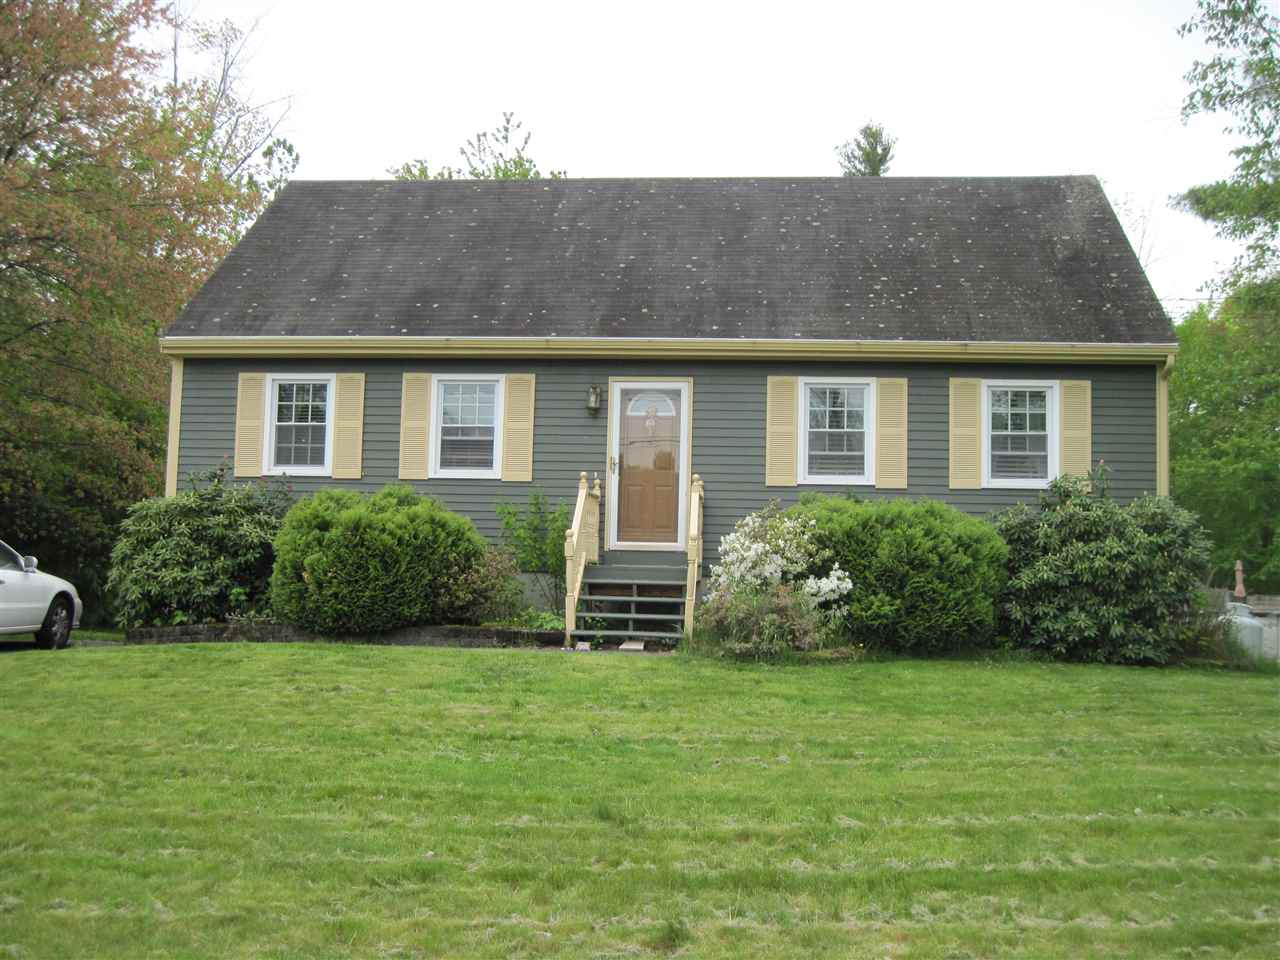 image of Derry NH Condo | sq.ft. 1344